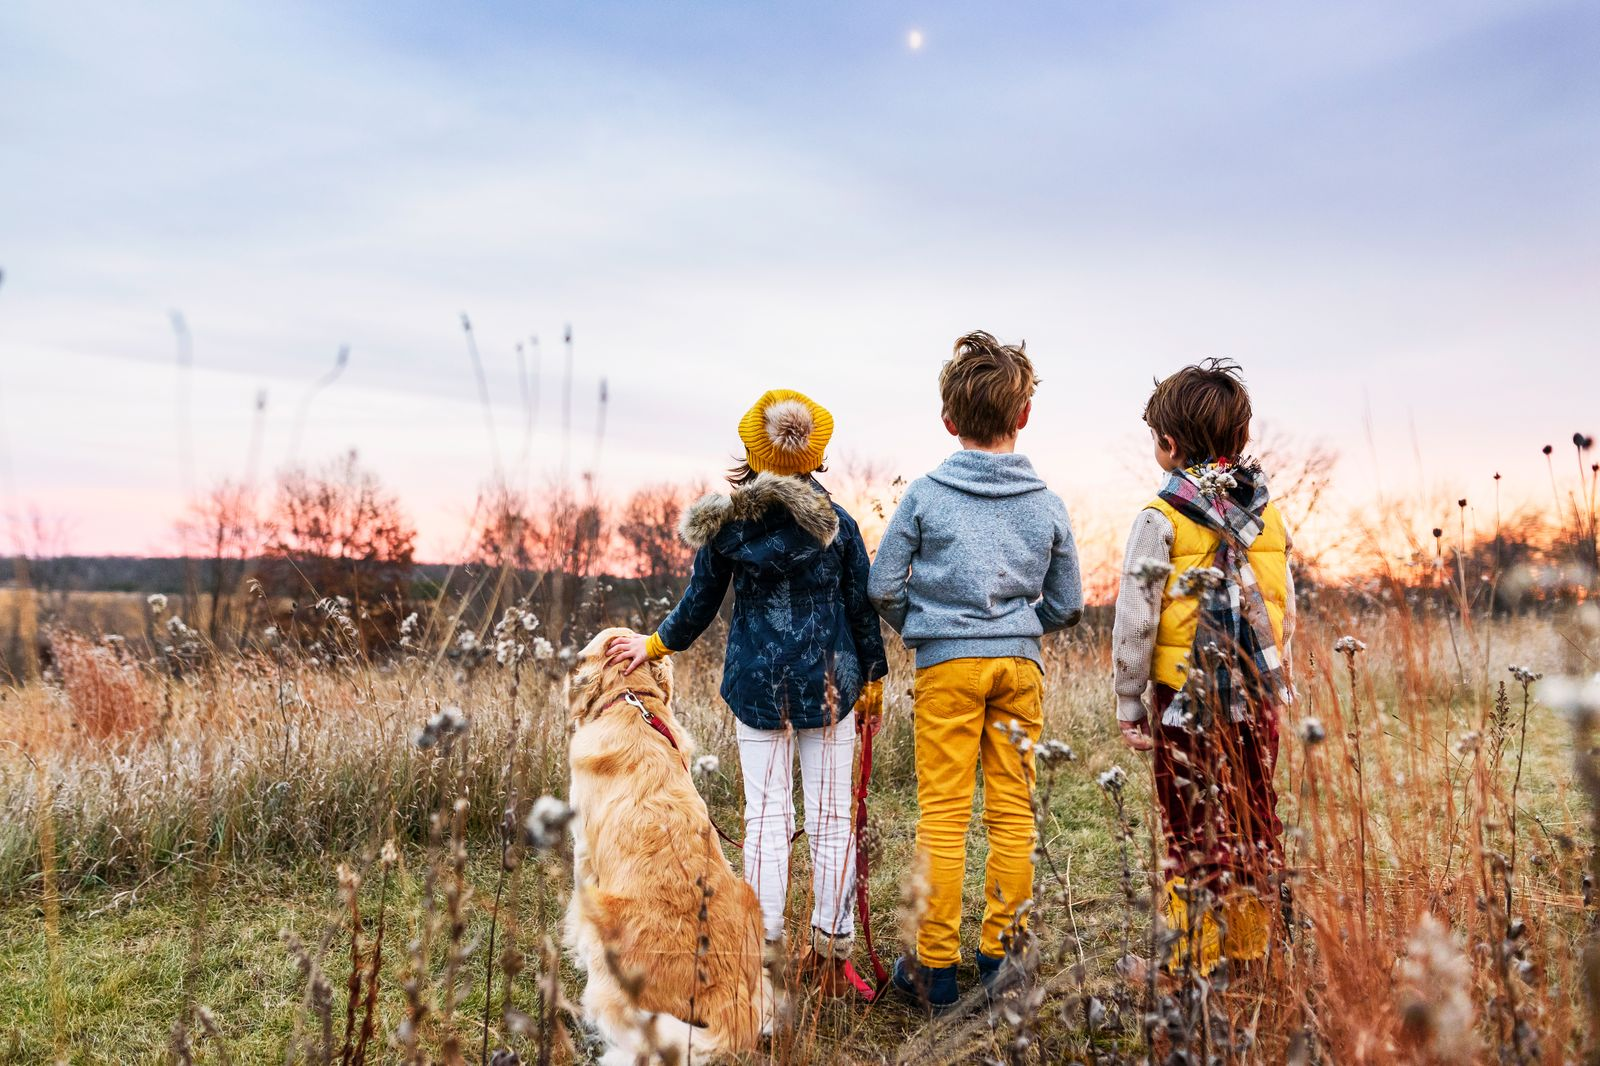 Three children in a field at sunset with their golden retriever dog, United States